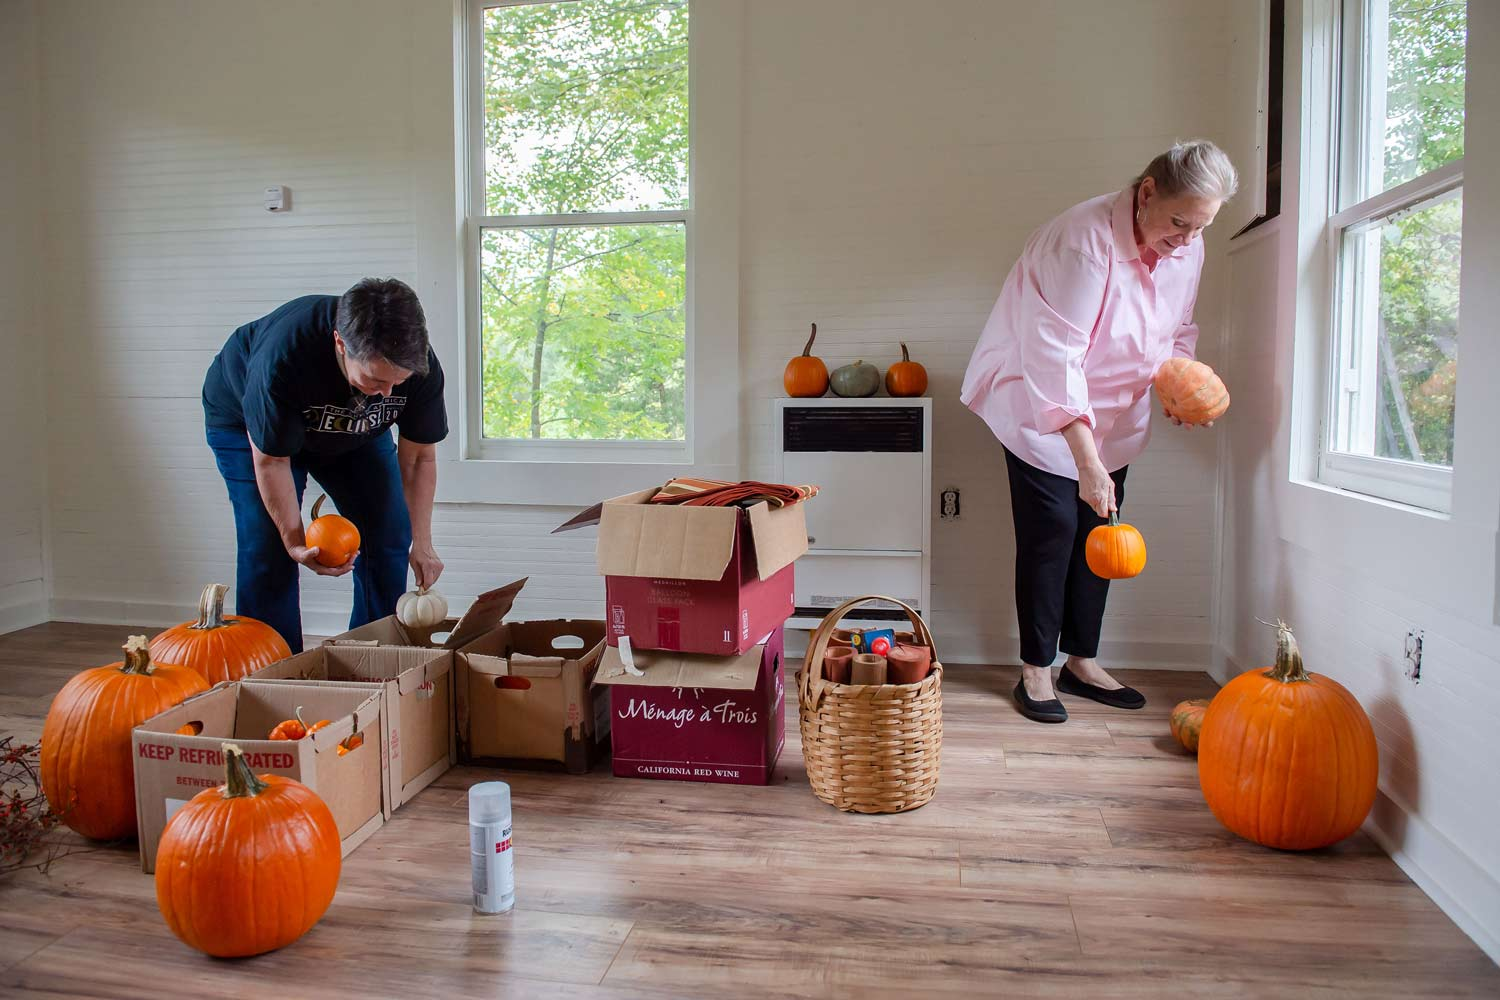 Becky Hoover and Paula Jones sort pumpkins to be used for decor for an upcoming wedding at the Parker Ranch. Photography by Bita Honarvar.